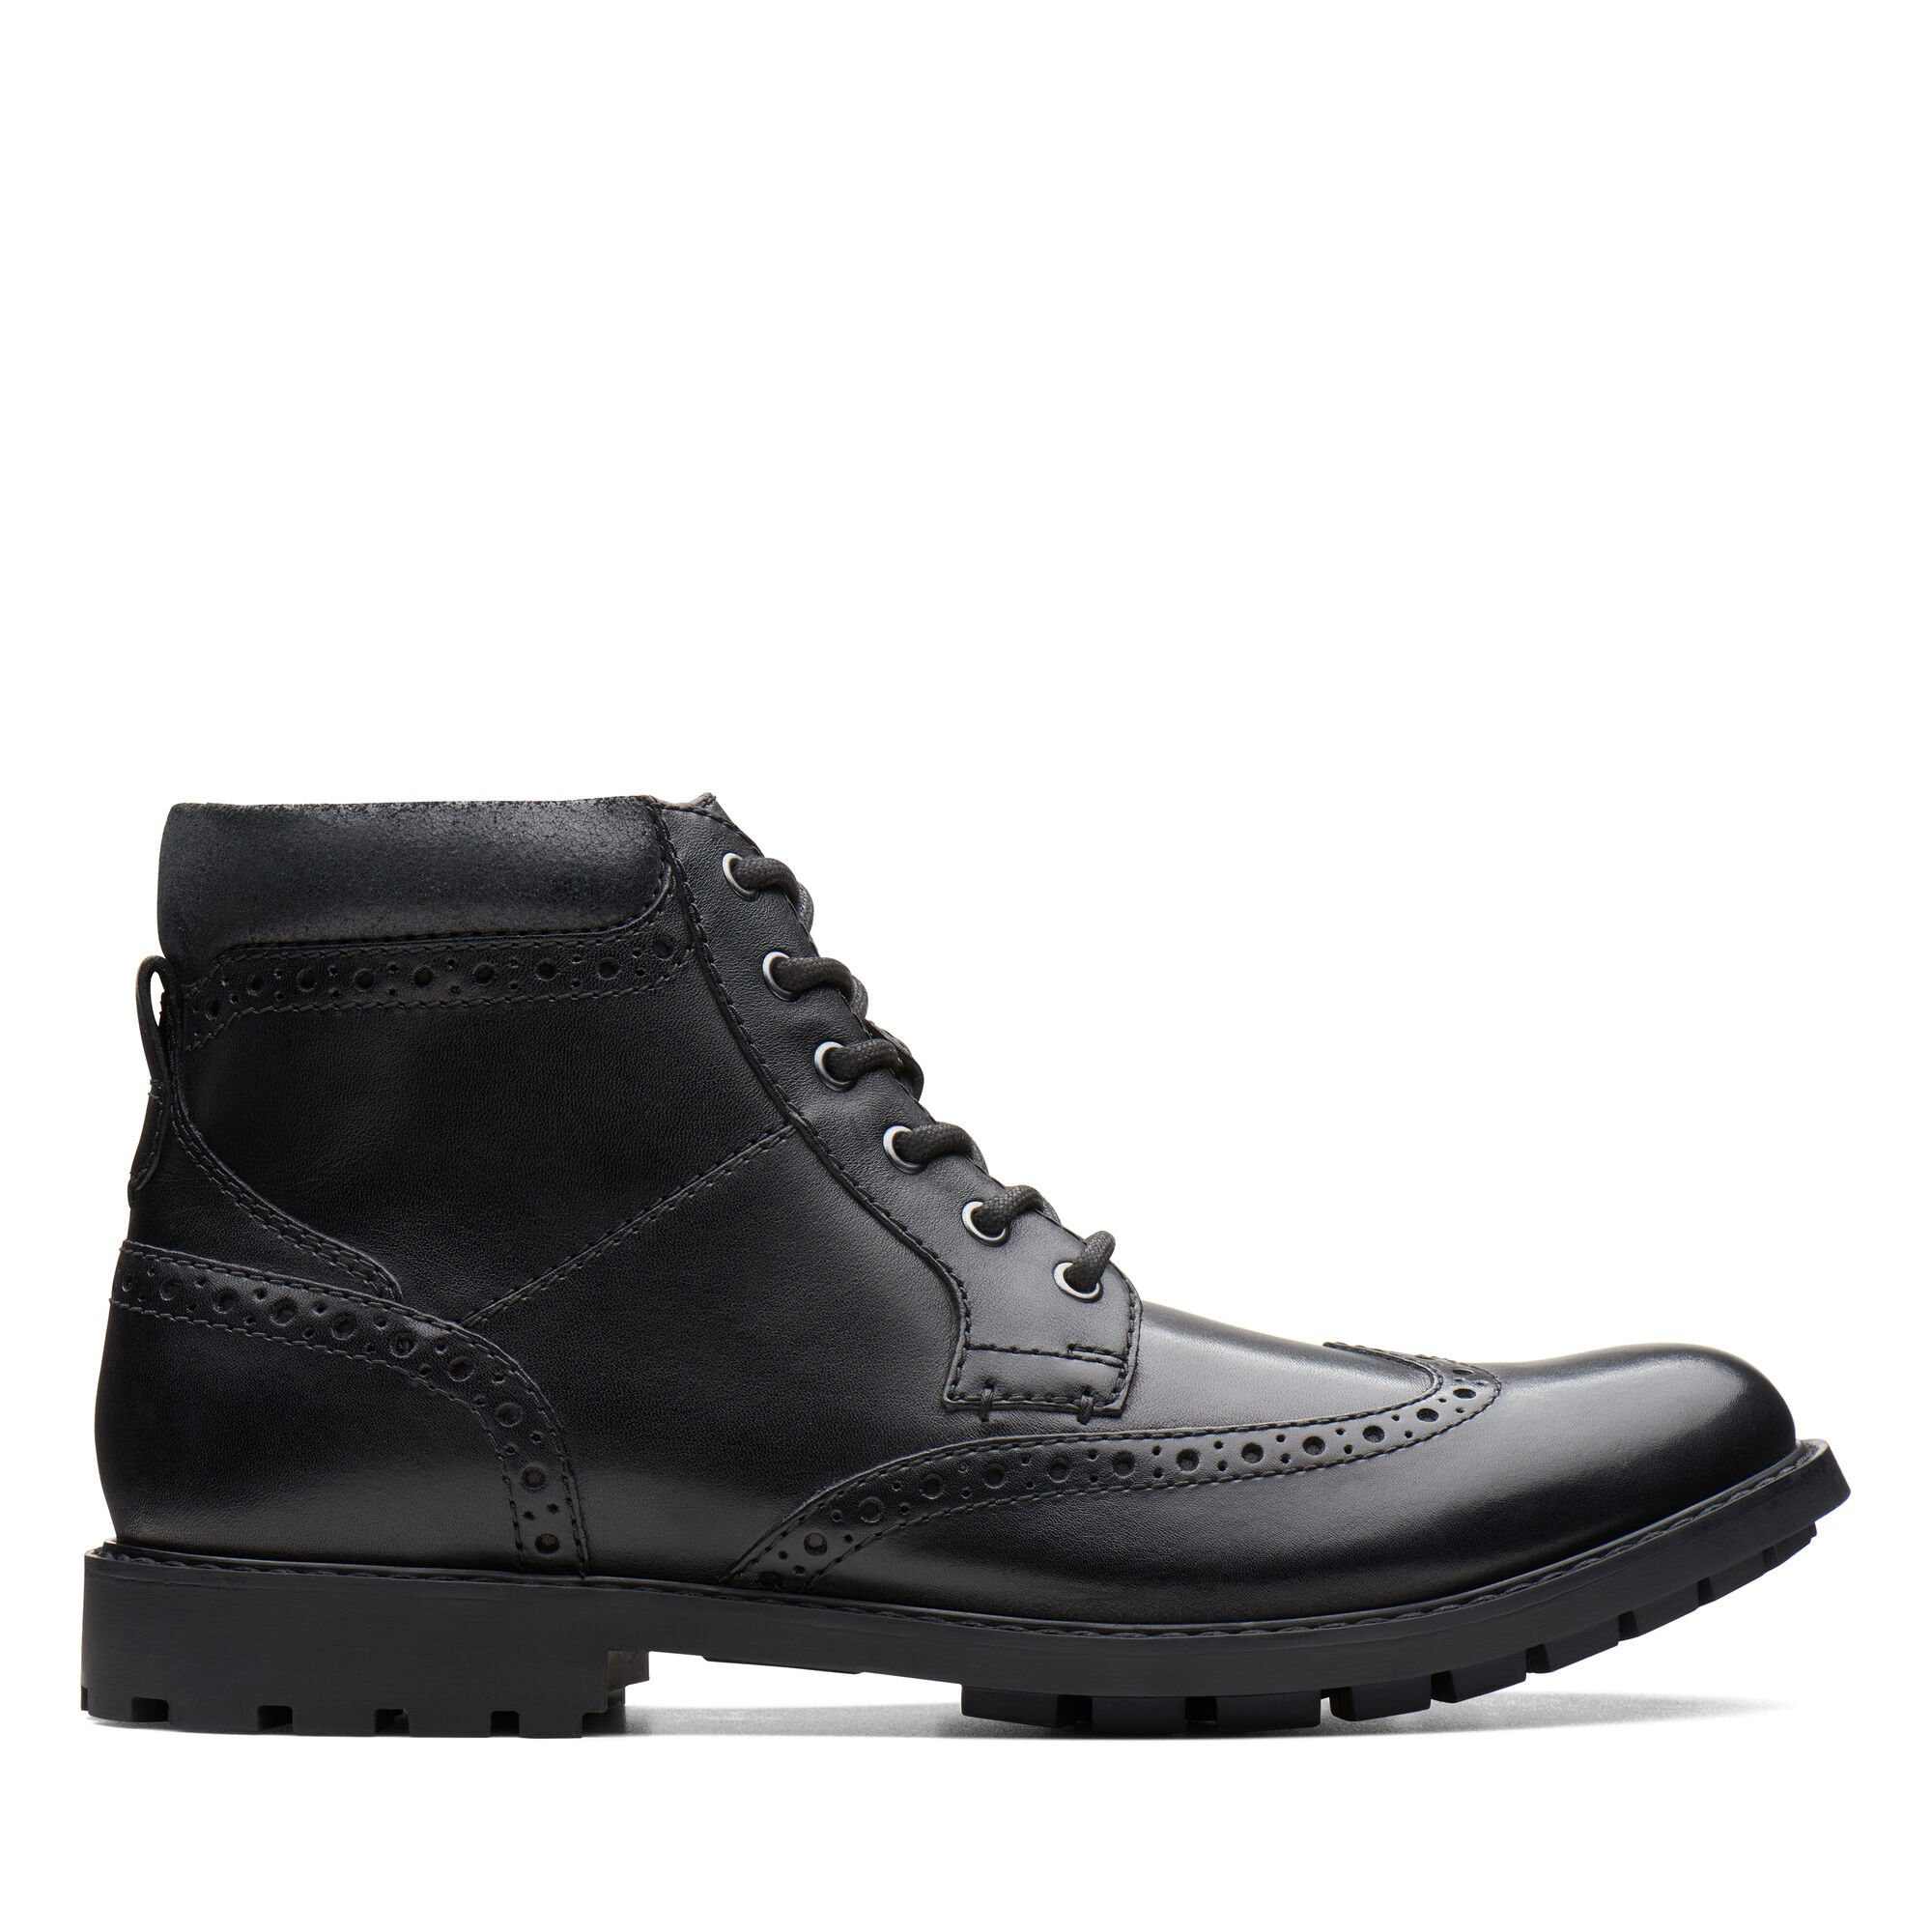 Men's Black Smooth Leather Ankle Boots